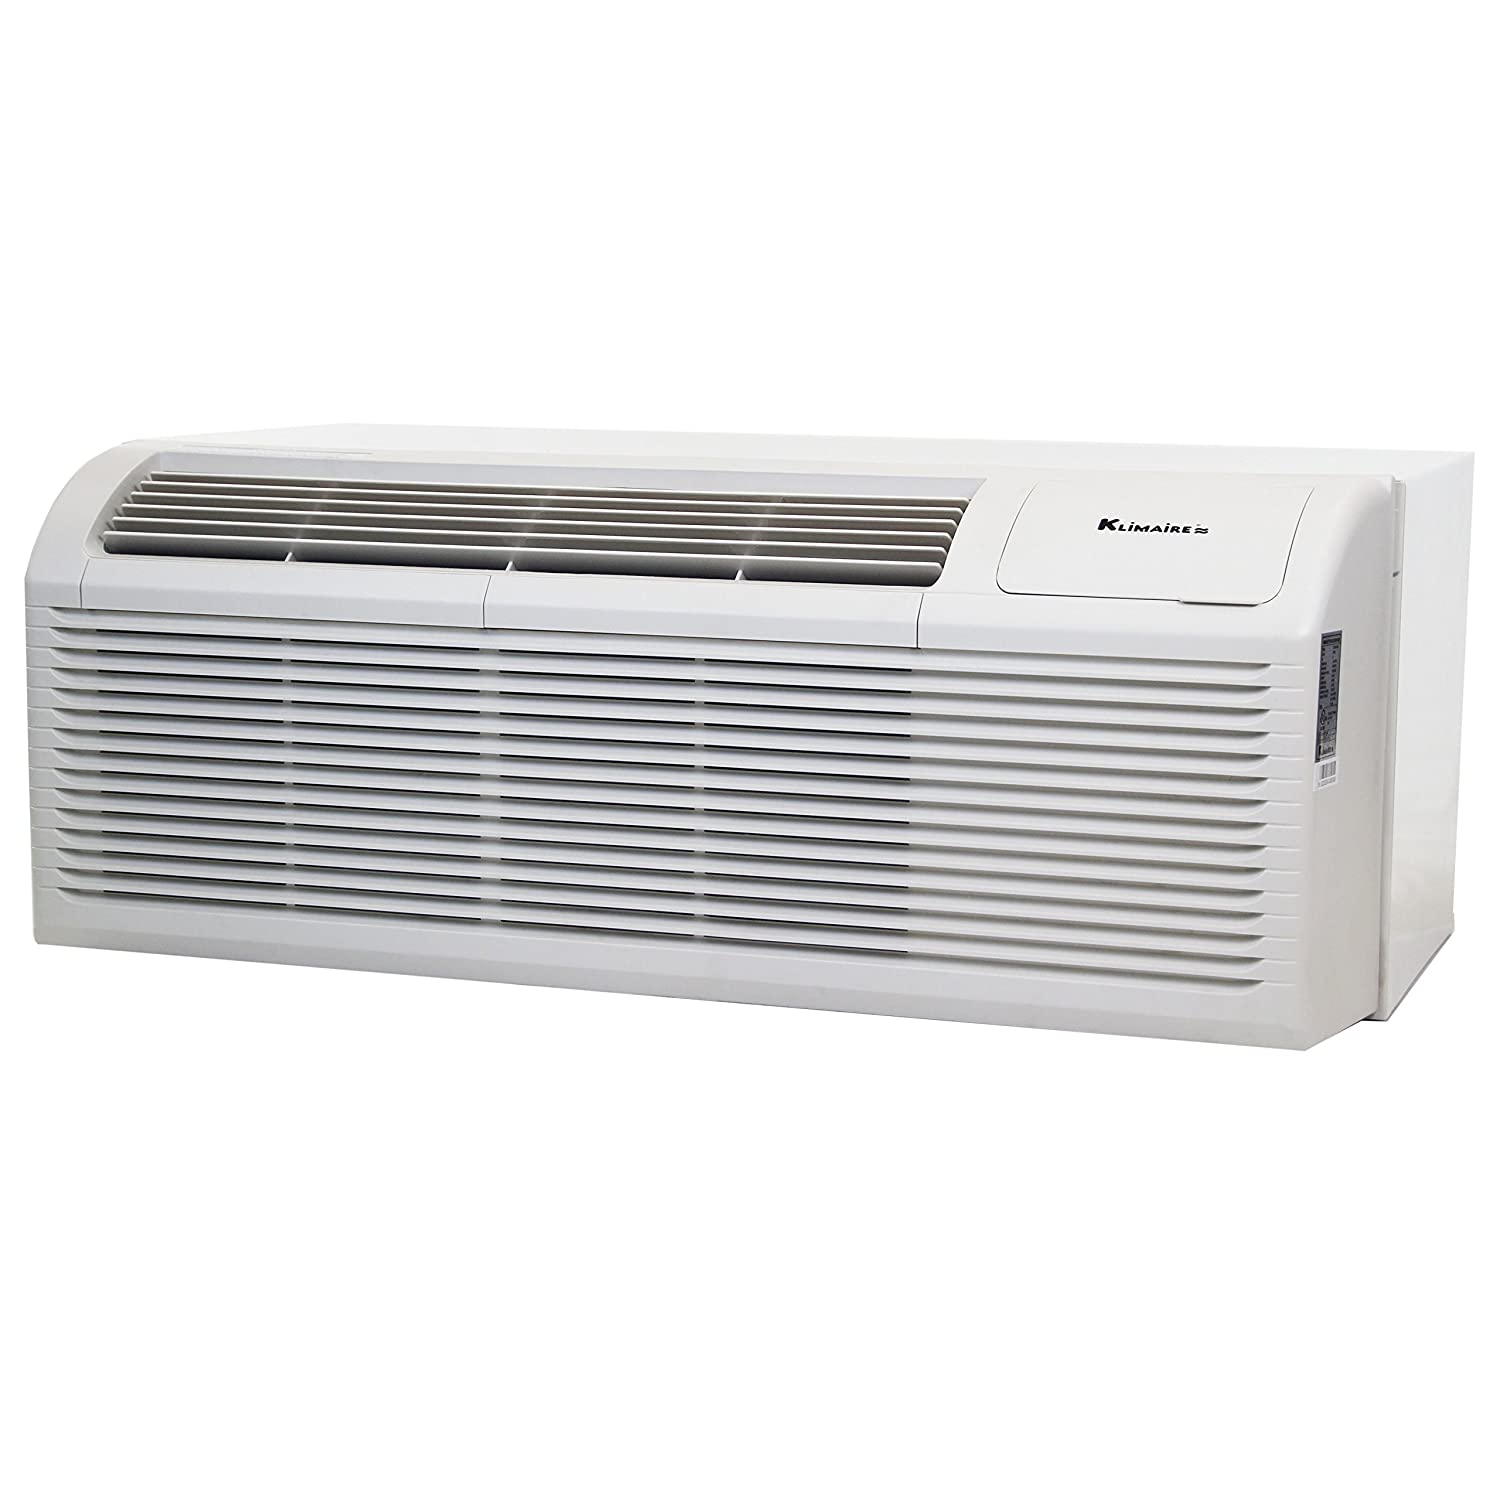 12000 BTU KLIMAIRE 10.5 EER PTAC Air Conditioner with 3kW Electric Heater includes Wall Sleeve and Aluminum Grille